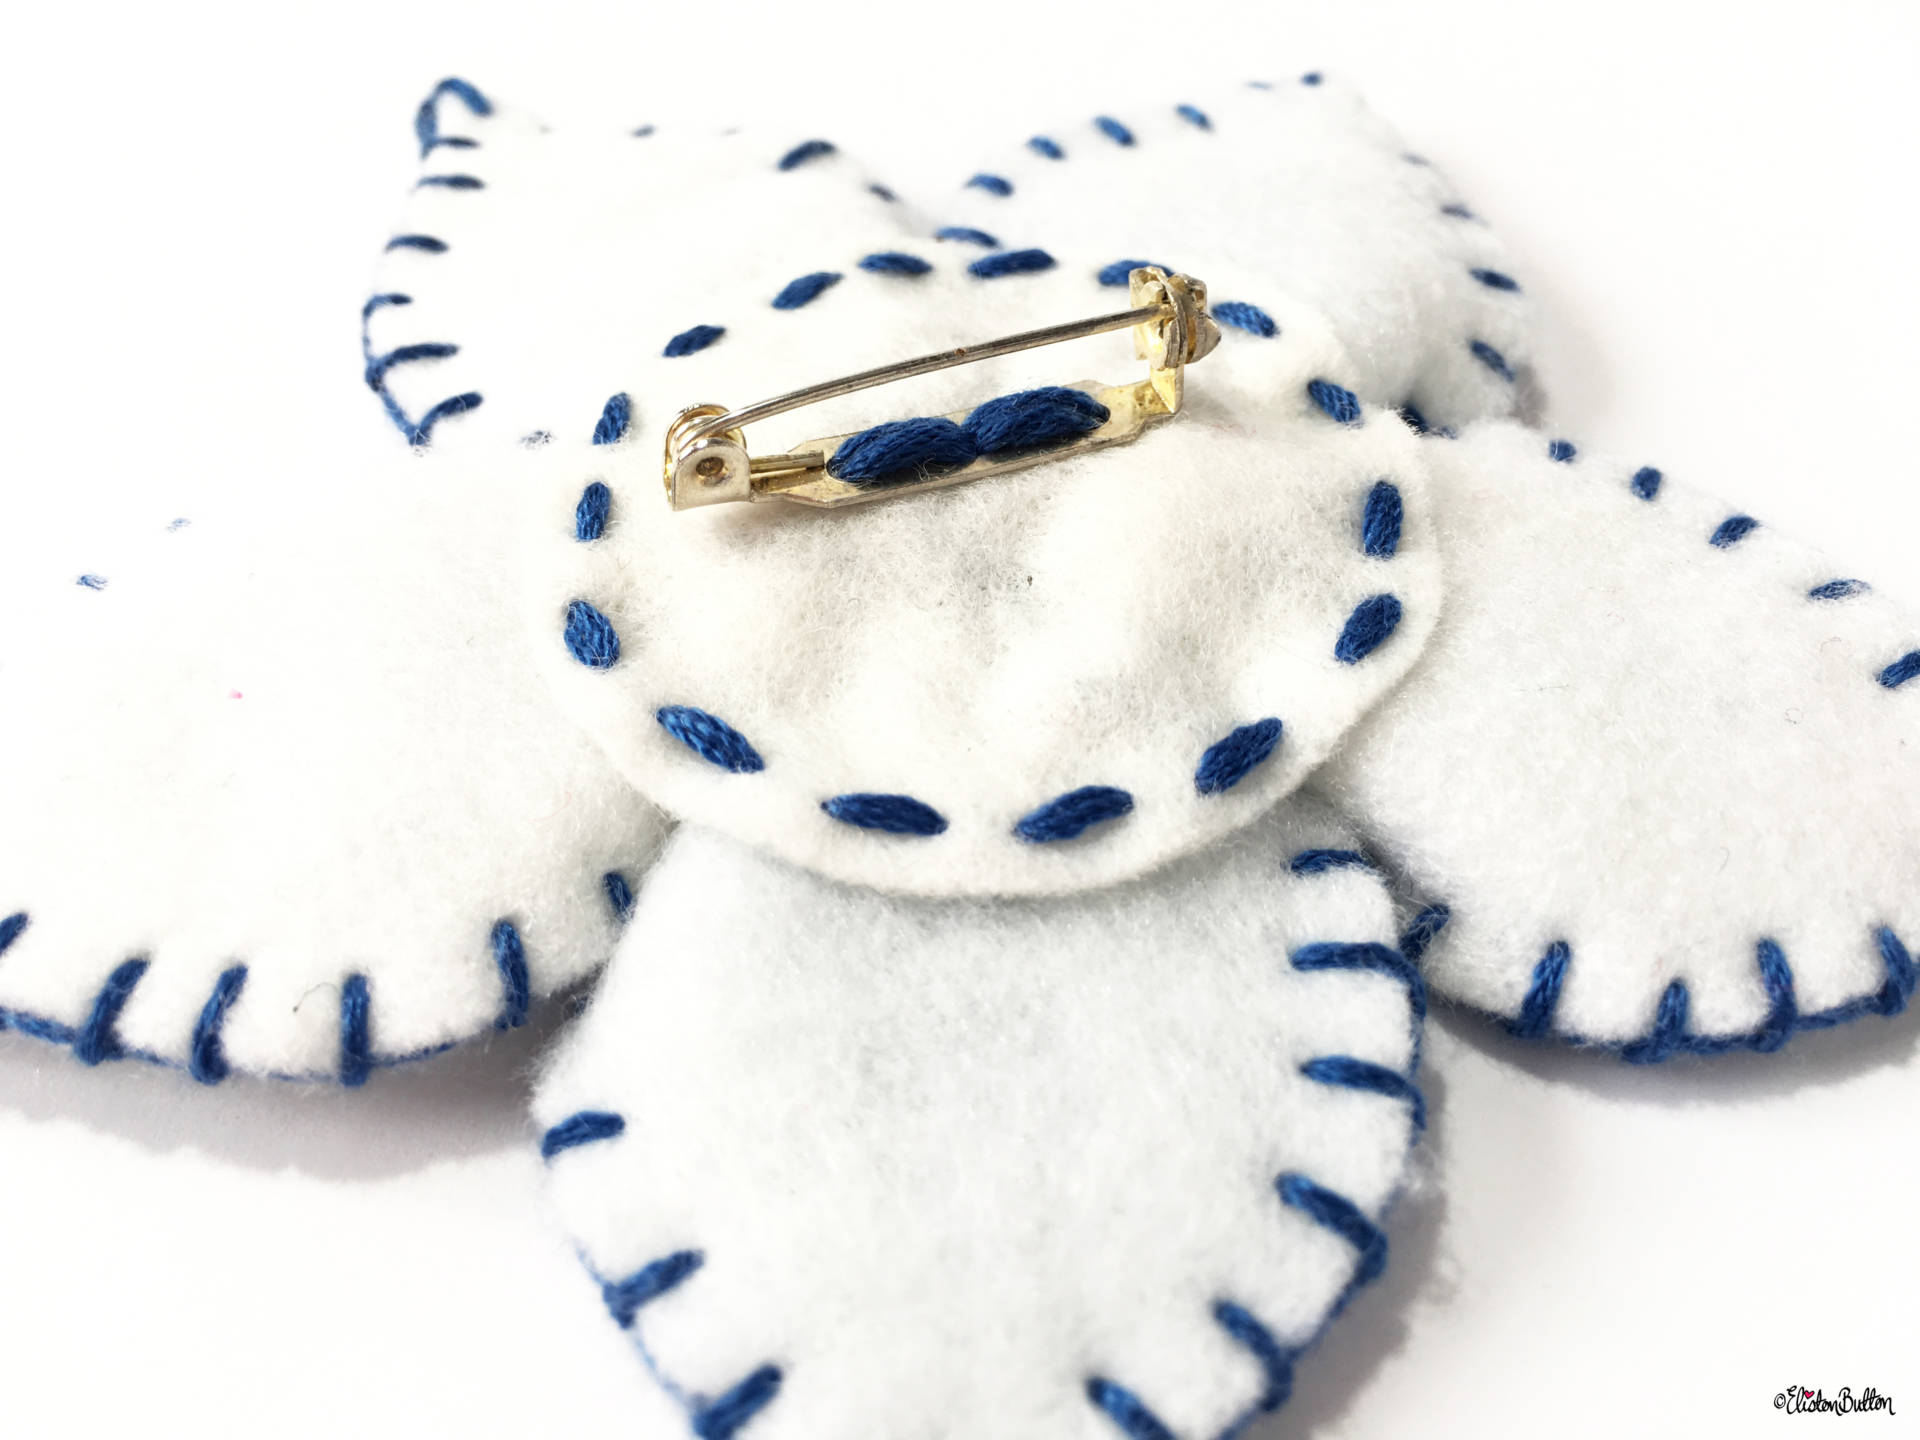 Blue and White Embroidered Felt Flower Brooch by Eliston Button Safety Catch Brooch Back with Neat Stitching - Create 30 - No. 14 - Blue and White Embroidered Felt Flower Brooch at www.elistonbutton.com - Eliston Button - That Crafty Kid – Art, Design, Craft & Adventure.